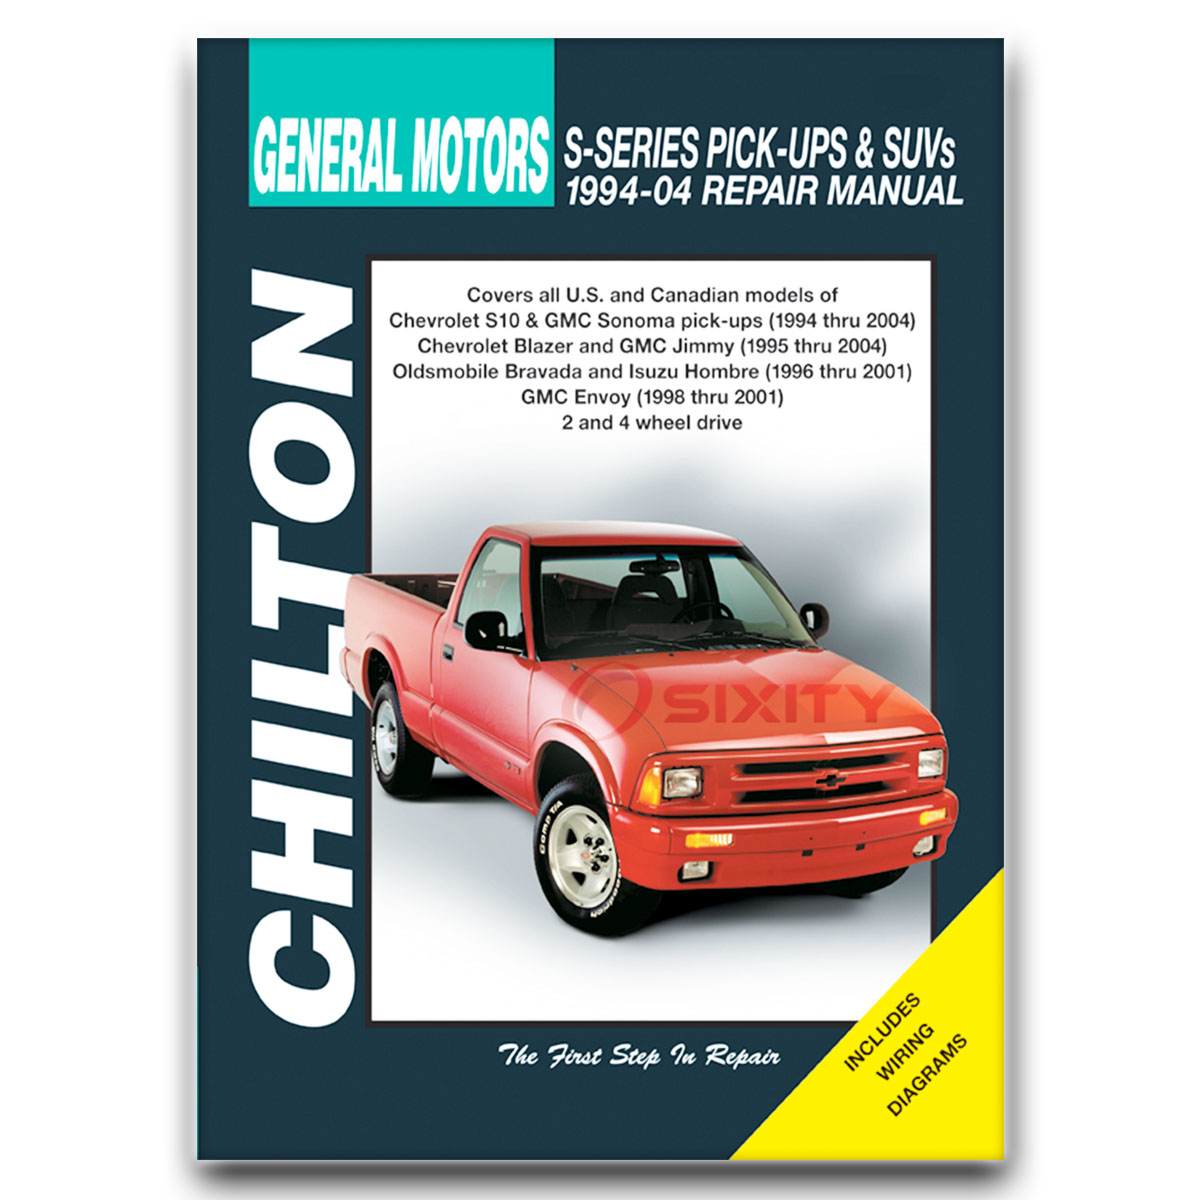 chevy s10 chilton repair manual base ss ls zr2 xtreme zr5 shop chevy s10 chilton repair manual base ss ls zr2 xtreme zr5 shop service qm